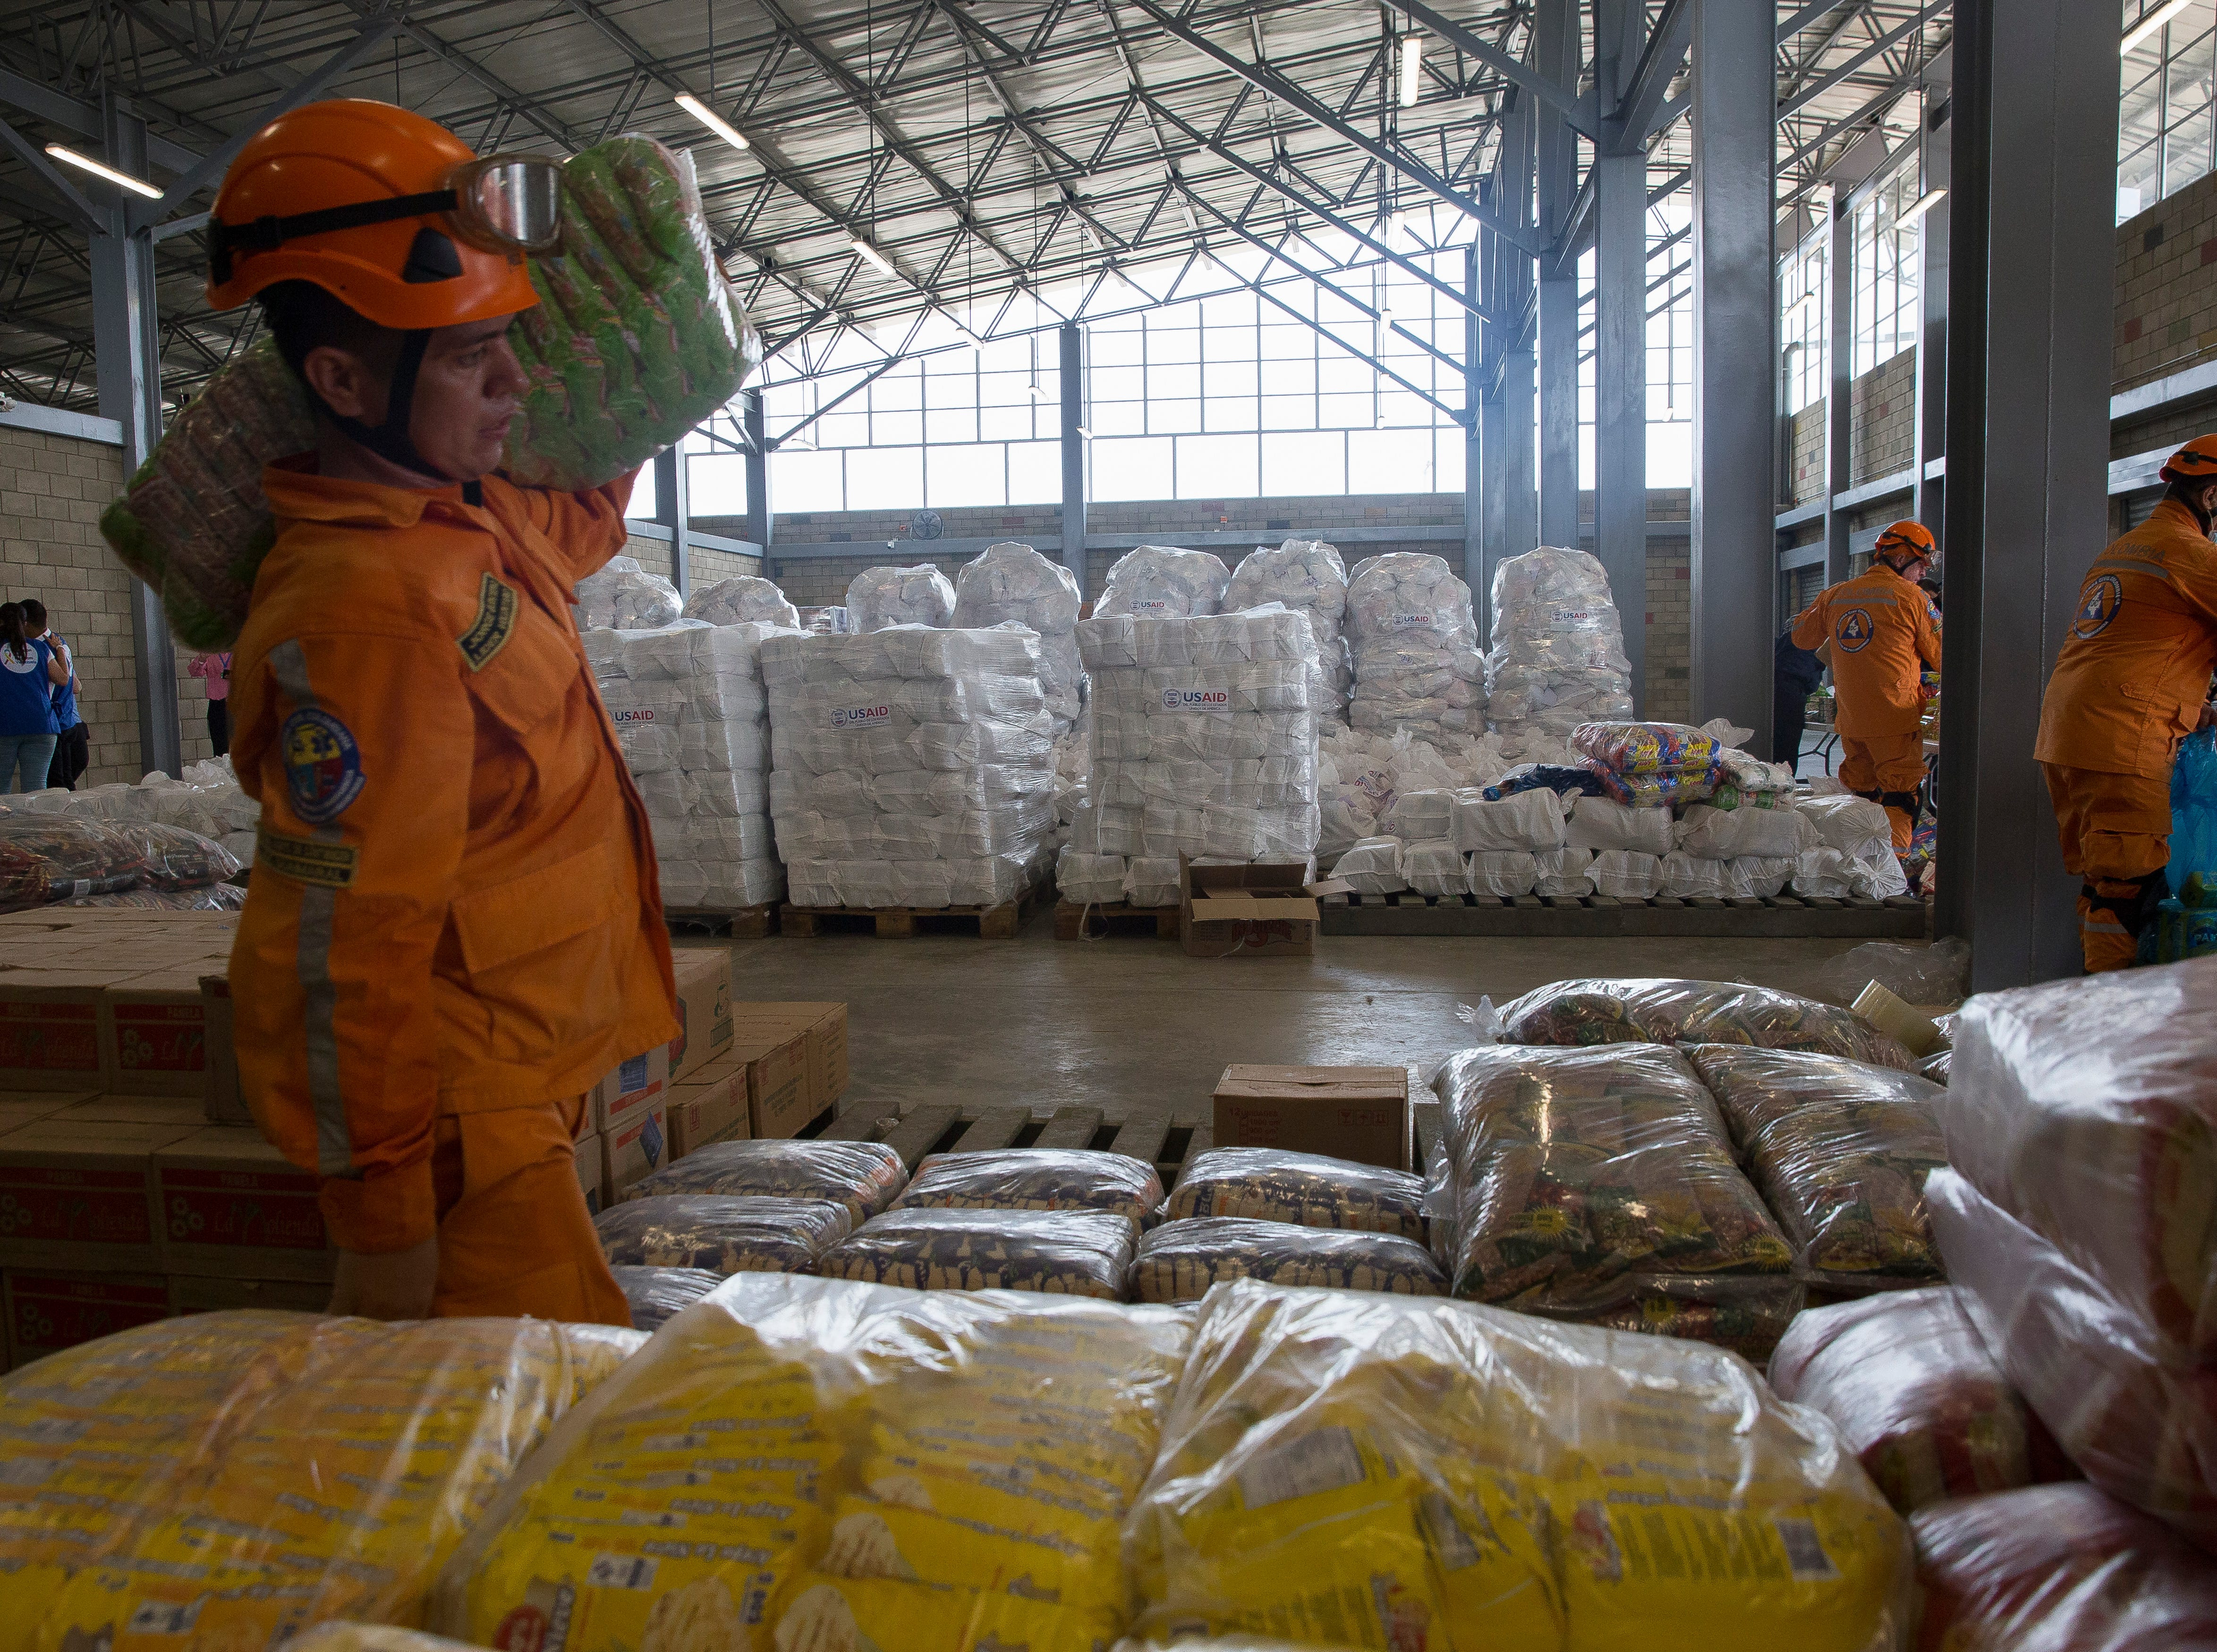 An aid worker carries a sack of lentils to be packed in white sacks of US humanitarian aid to be sent to the Venezuelan people on Colombia-Venezuela border on Feb. 8, 2019.